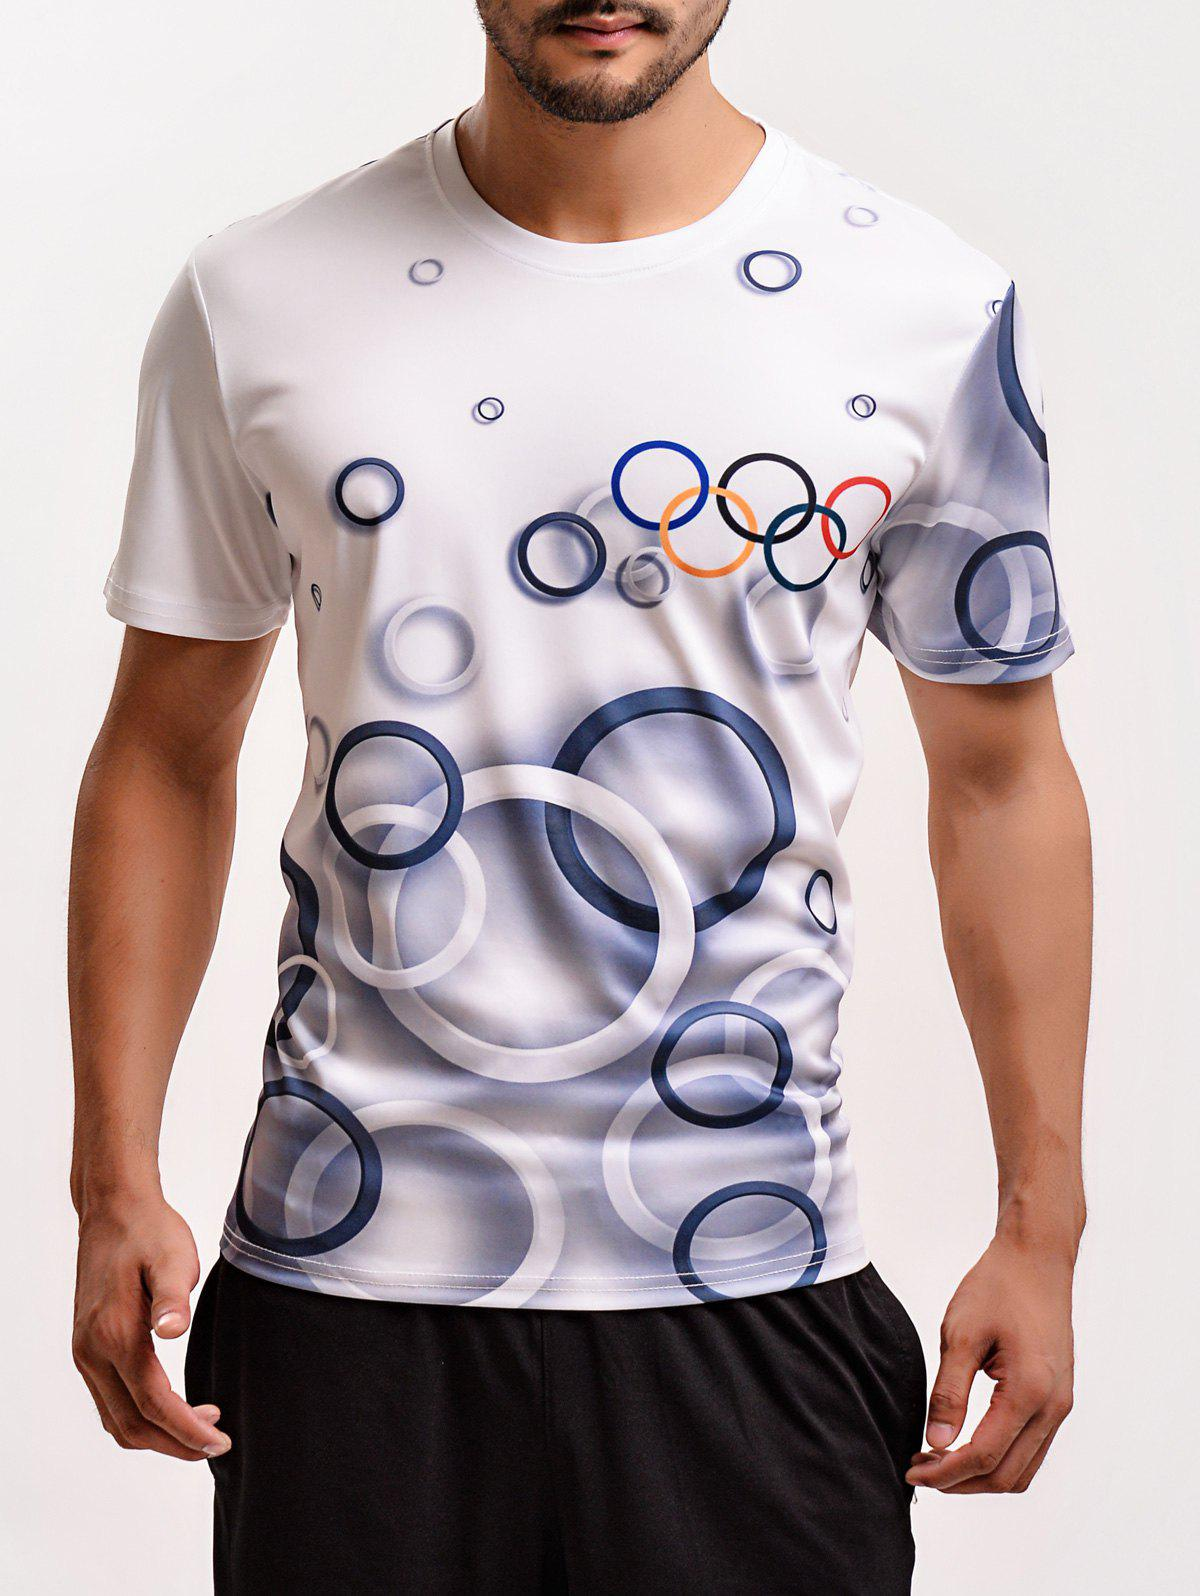 Olympic Rings Print Round Neck Short Sleeves T-Shirt For Men - WHITE 3XL